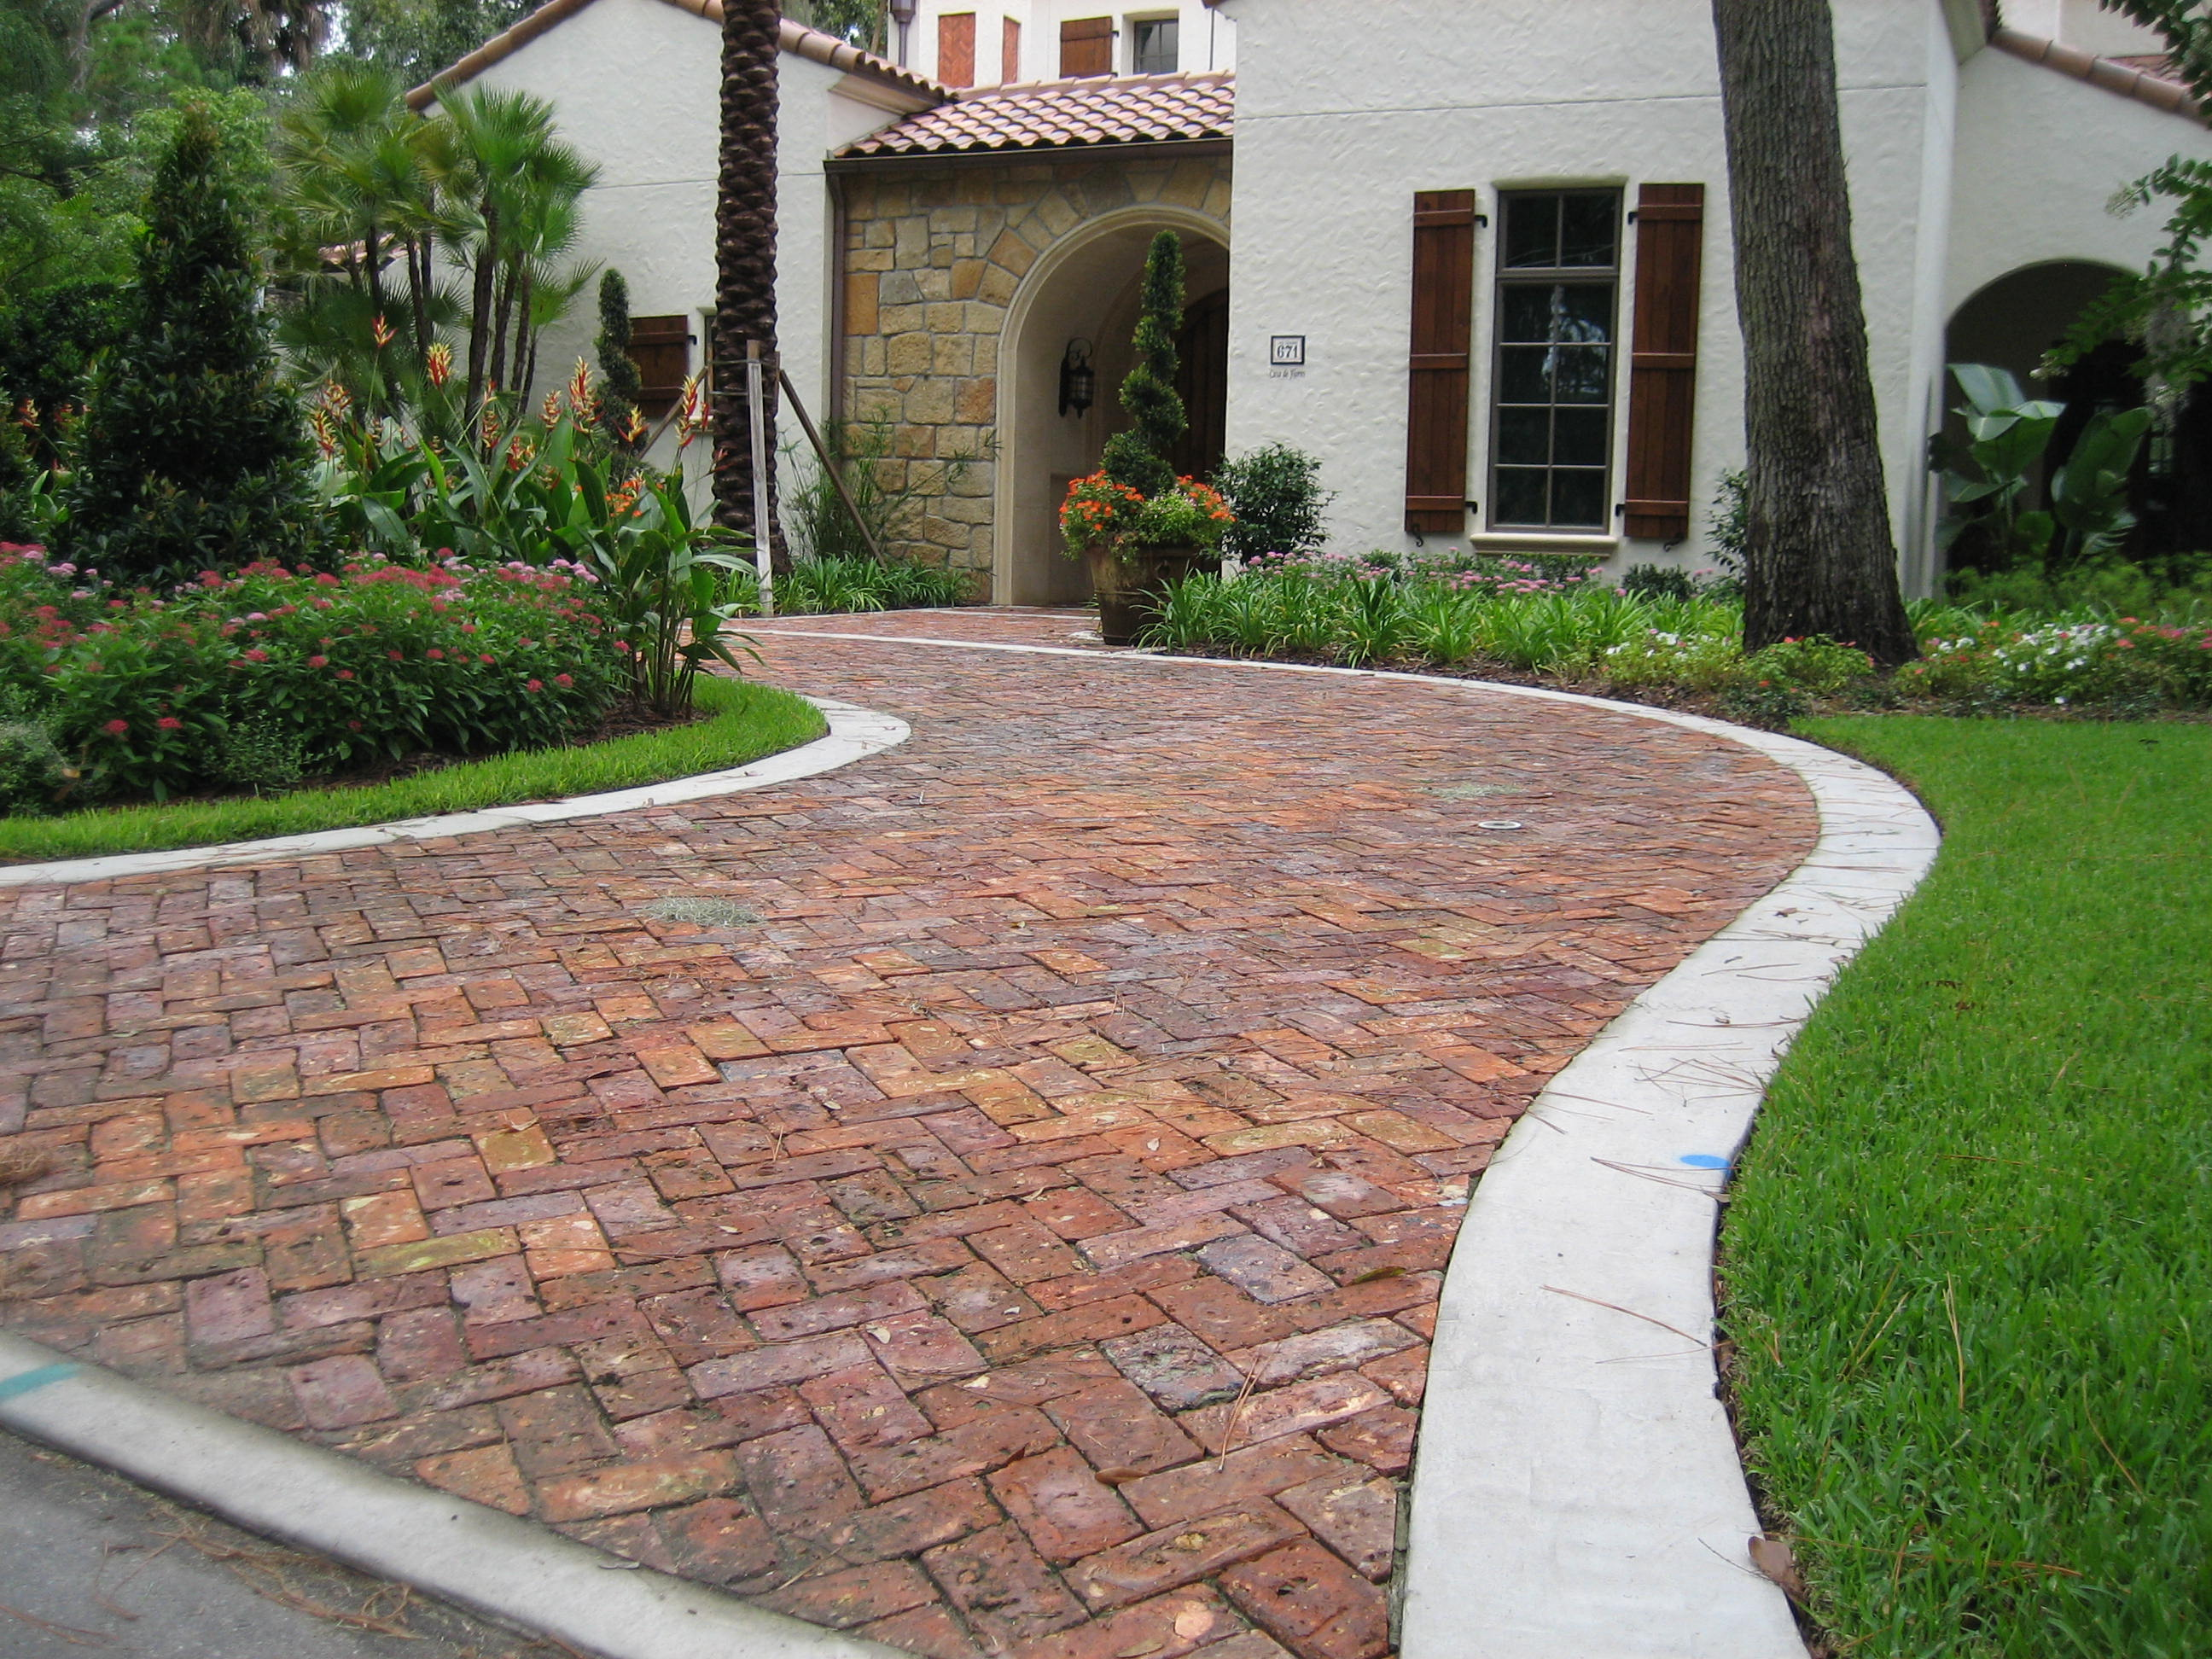 Brick pavers for exterior flooring